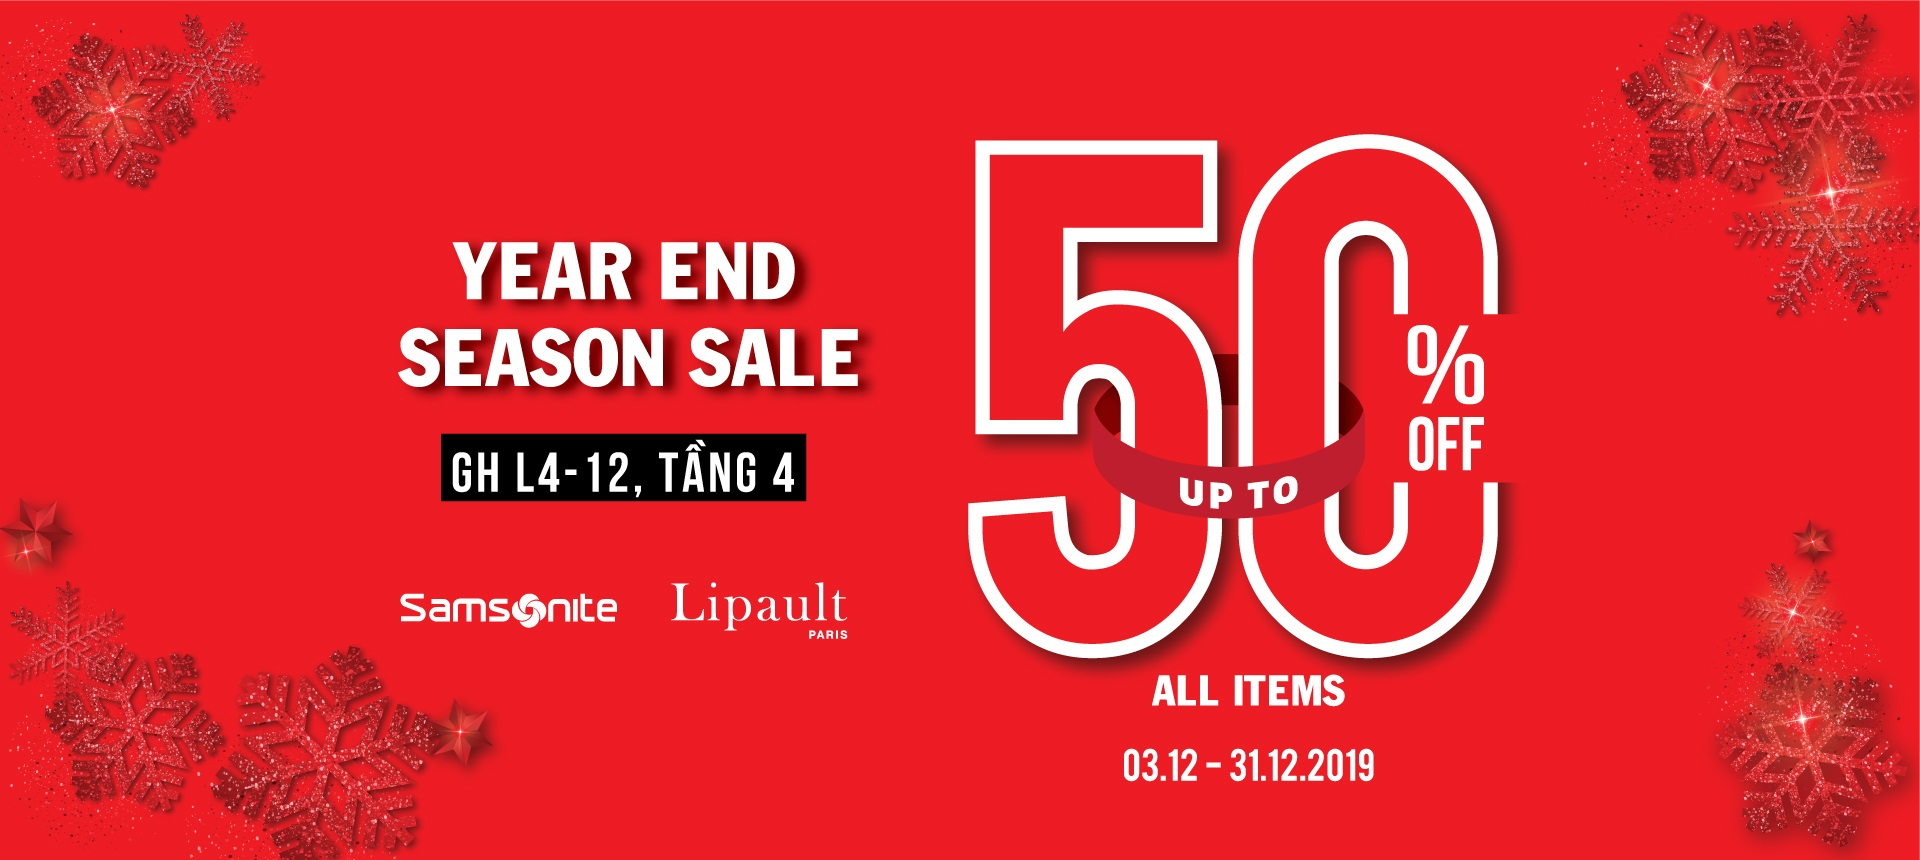 SAMSONITE YEAR END SALE